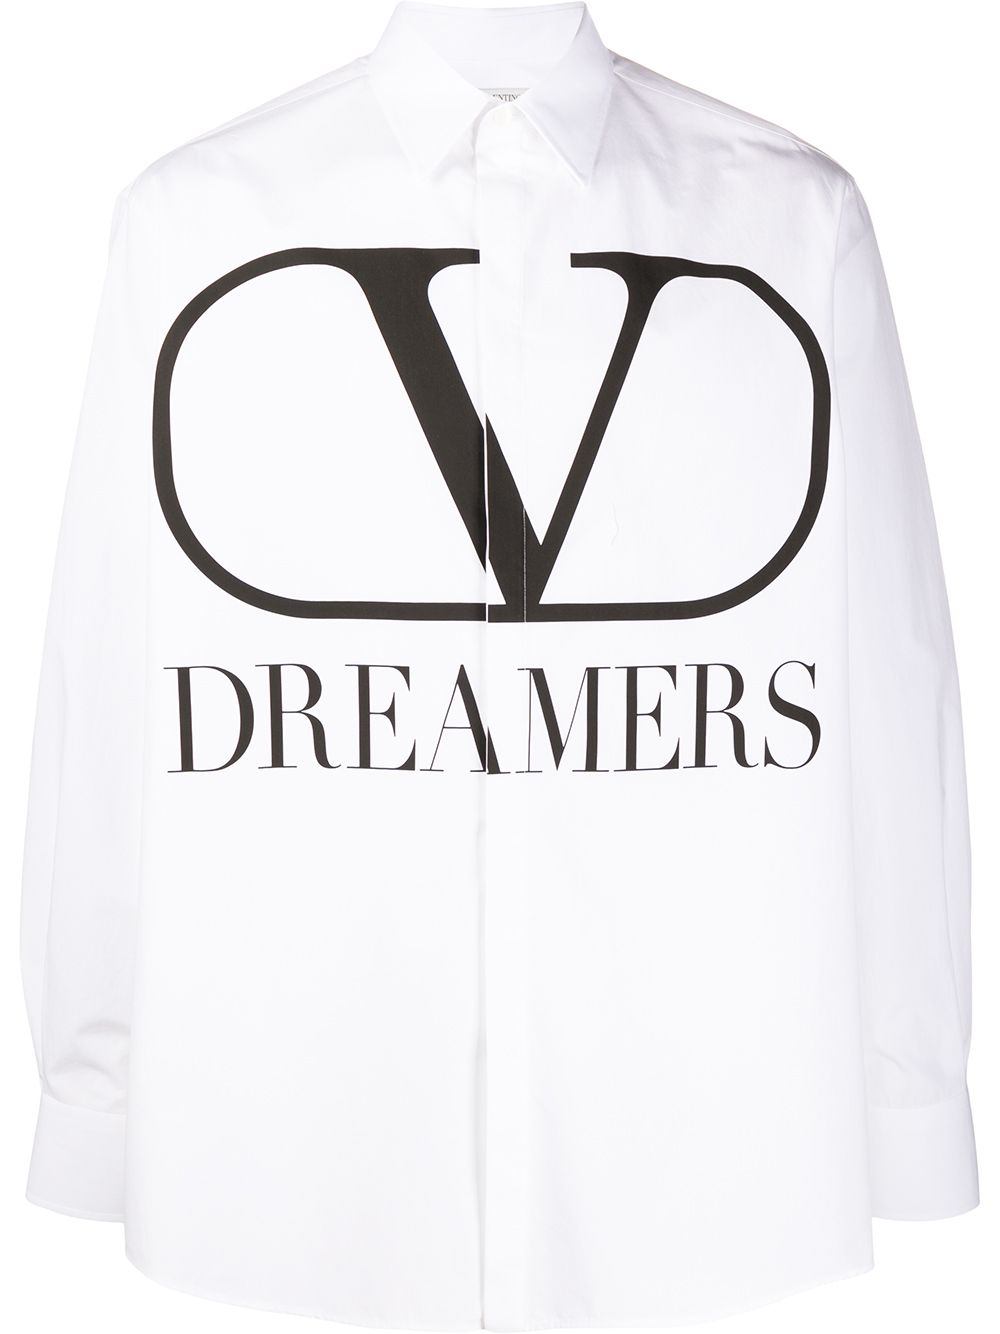 V Logo Dreamers Shirt